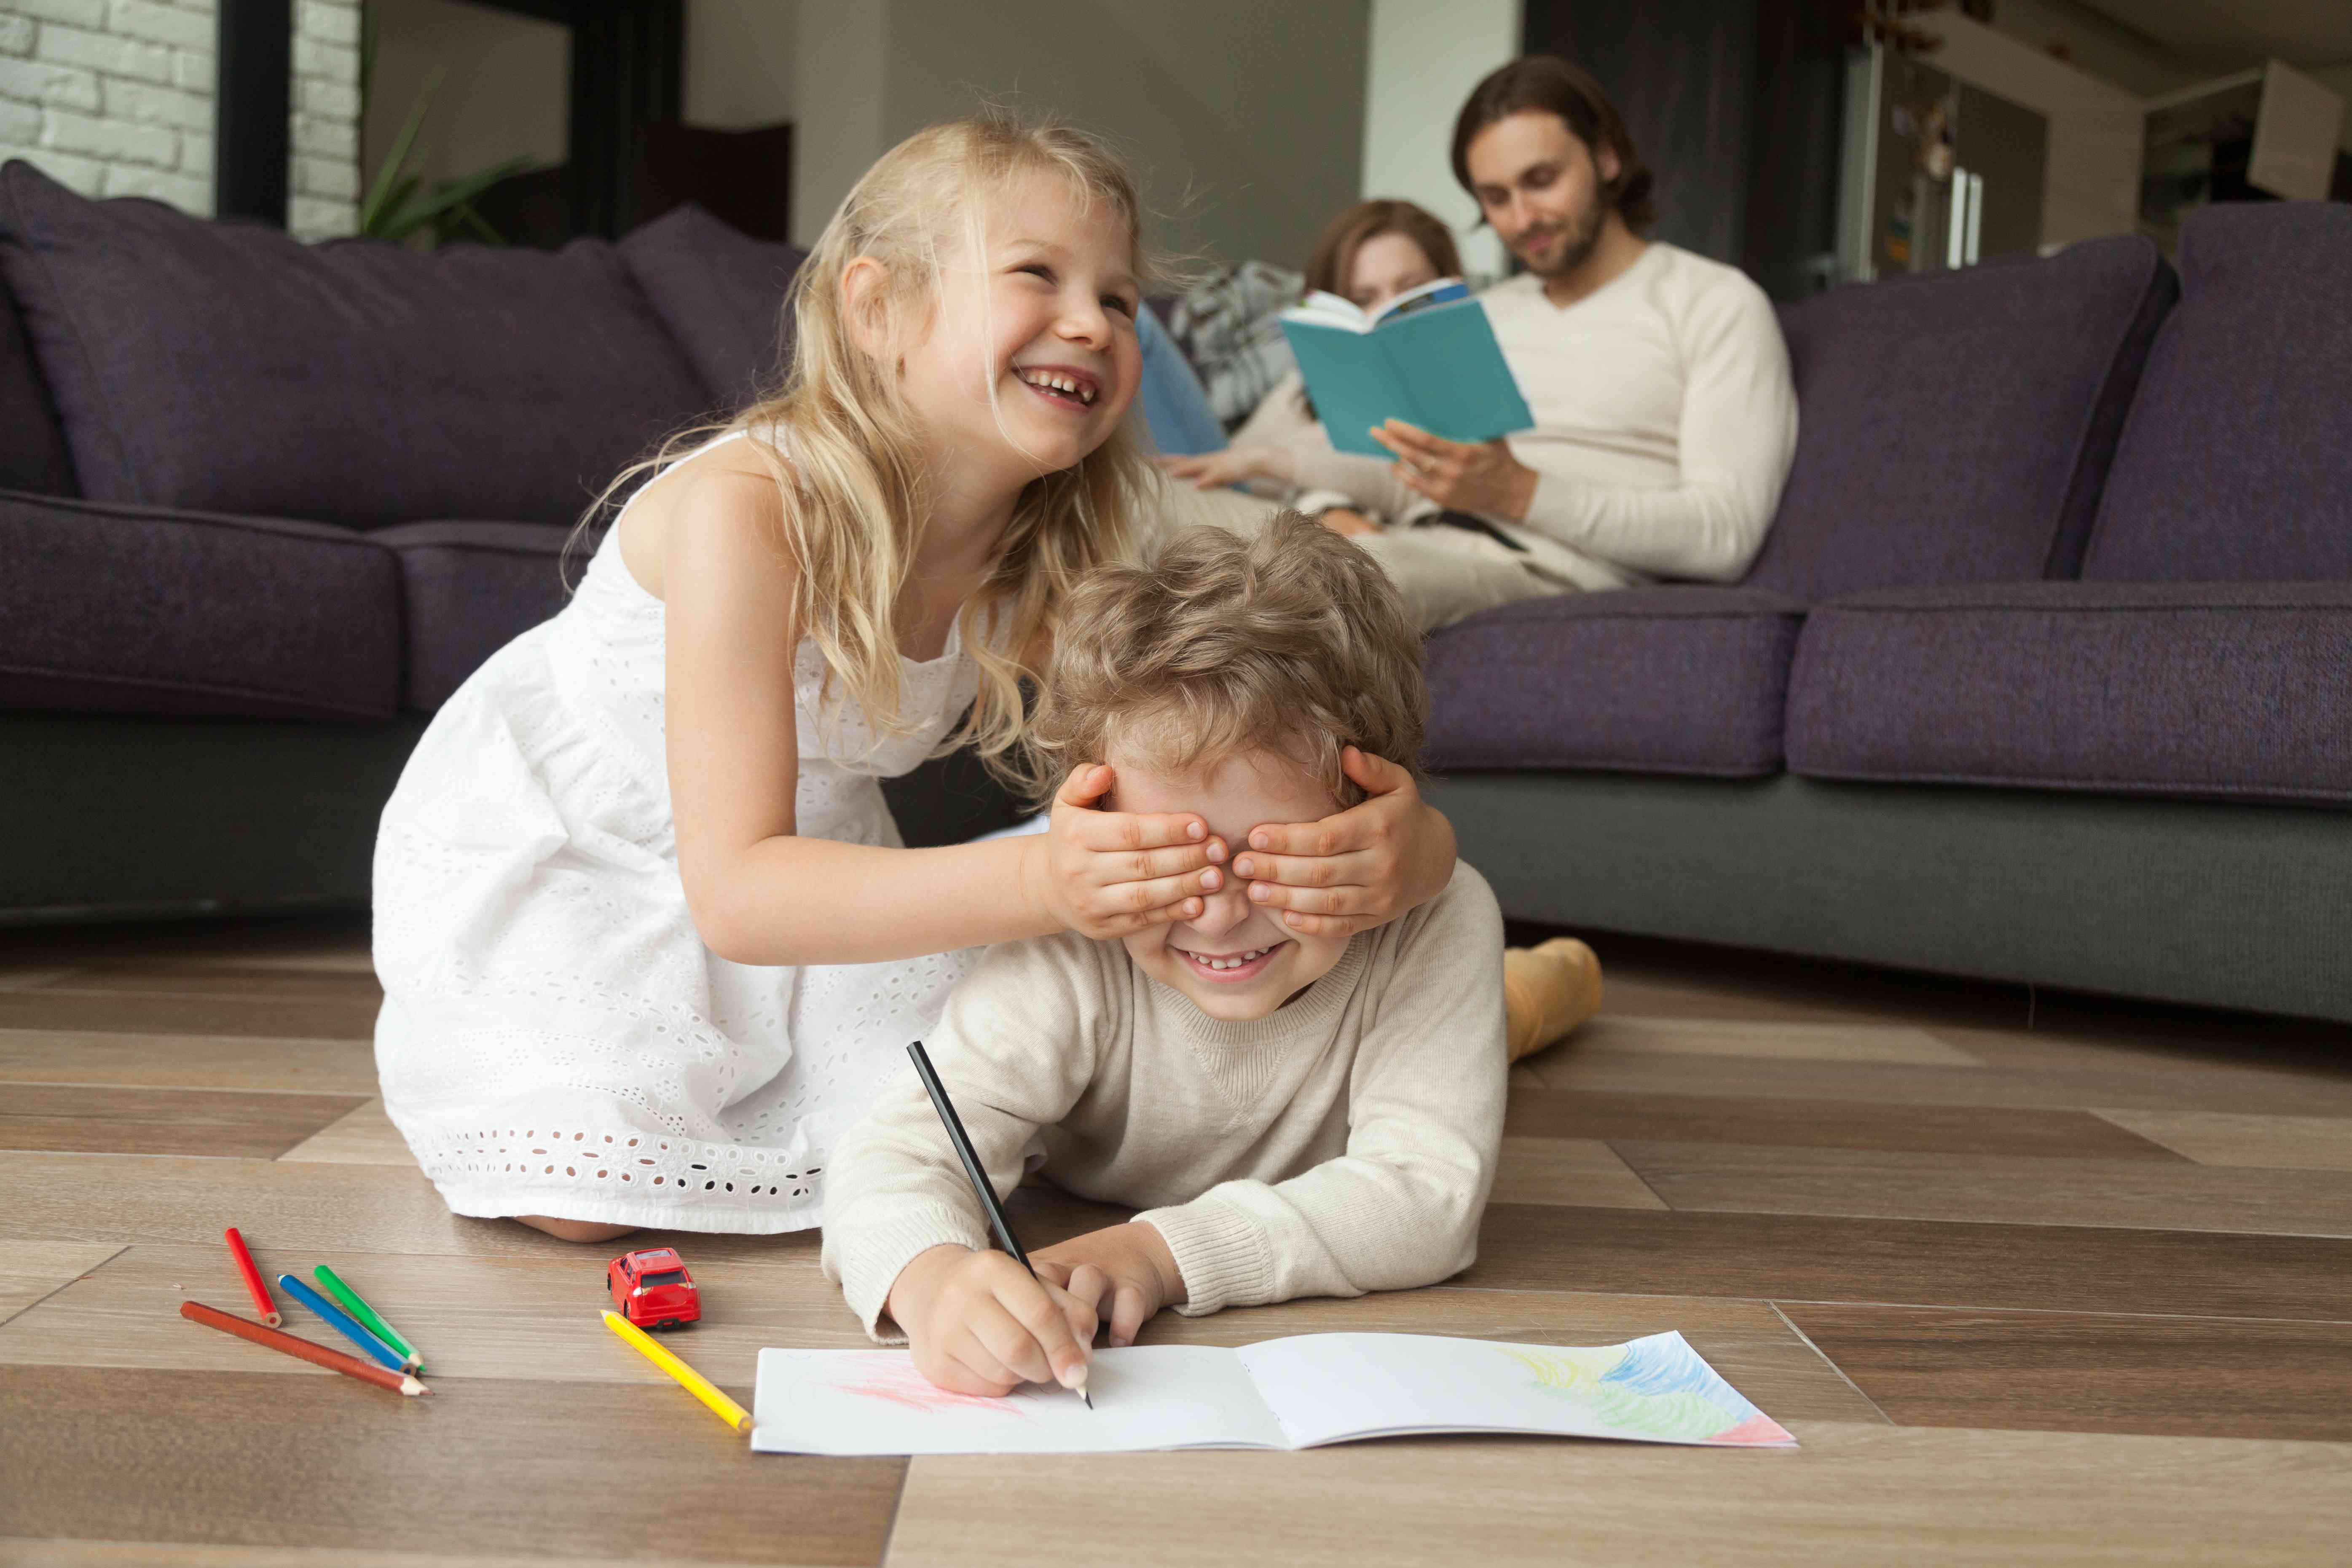 Sister closing brothers eyes with hands, family activities at home